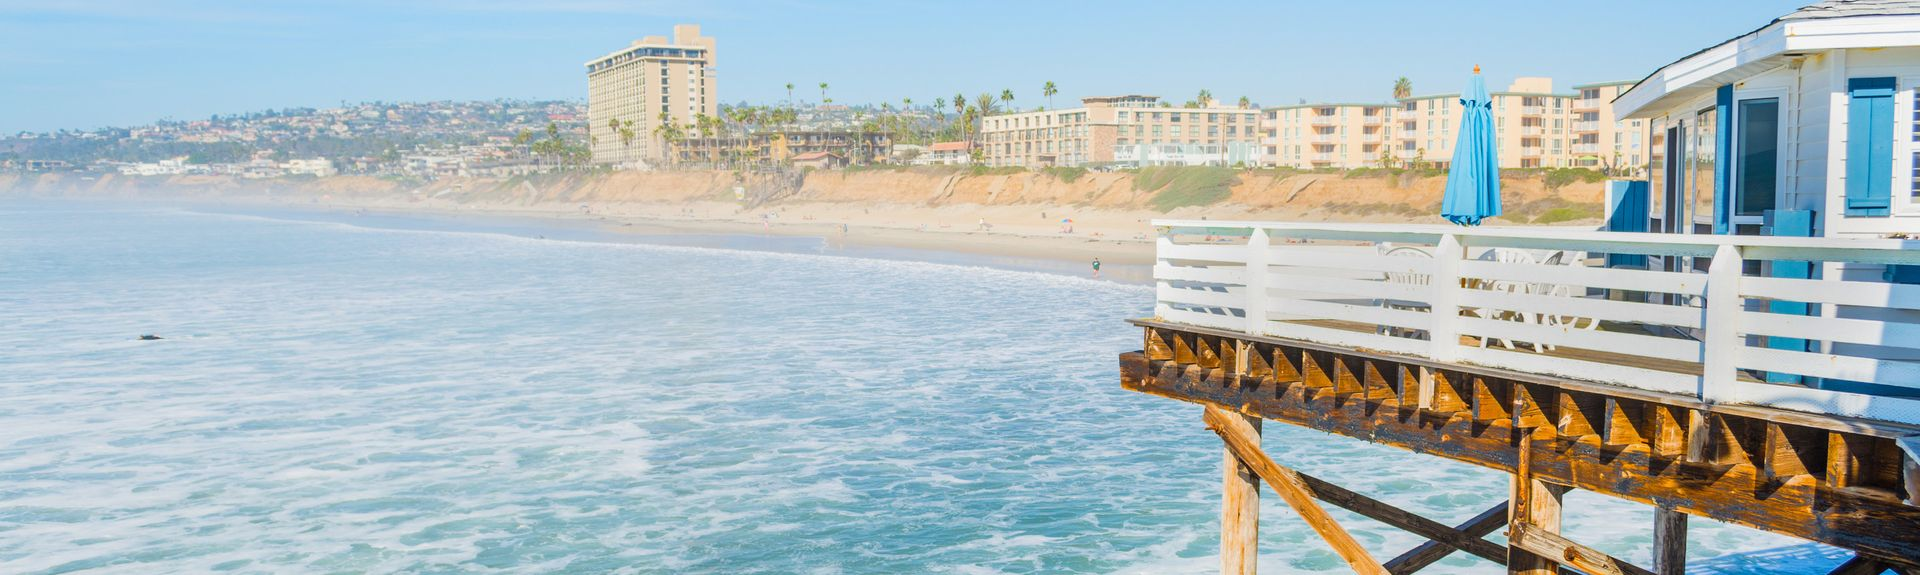 Vrbo Pacific Beach San Diego Vacation Rentals Reviews Booking